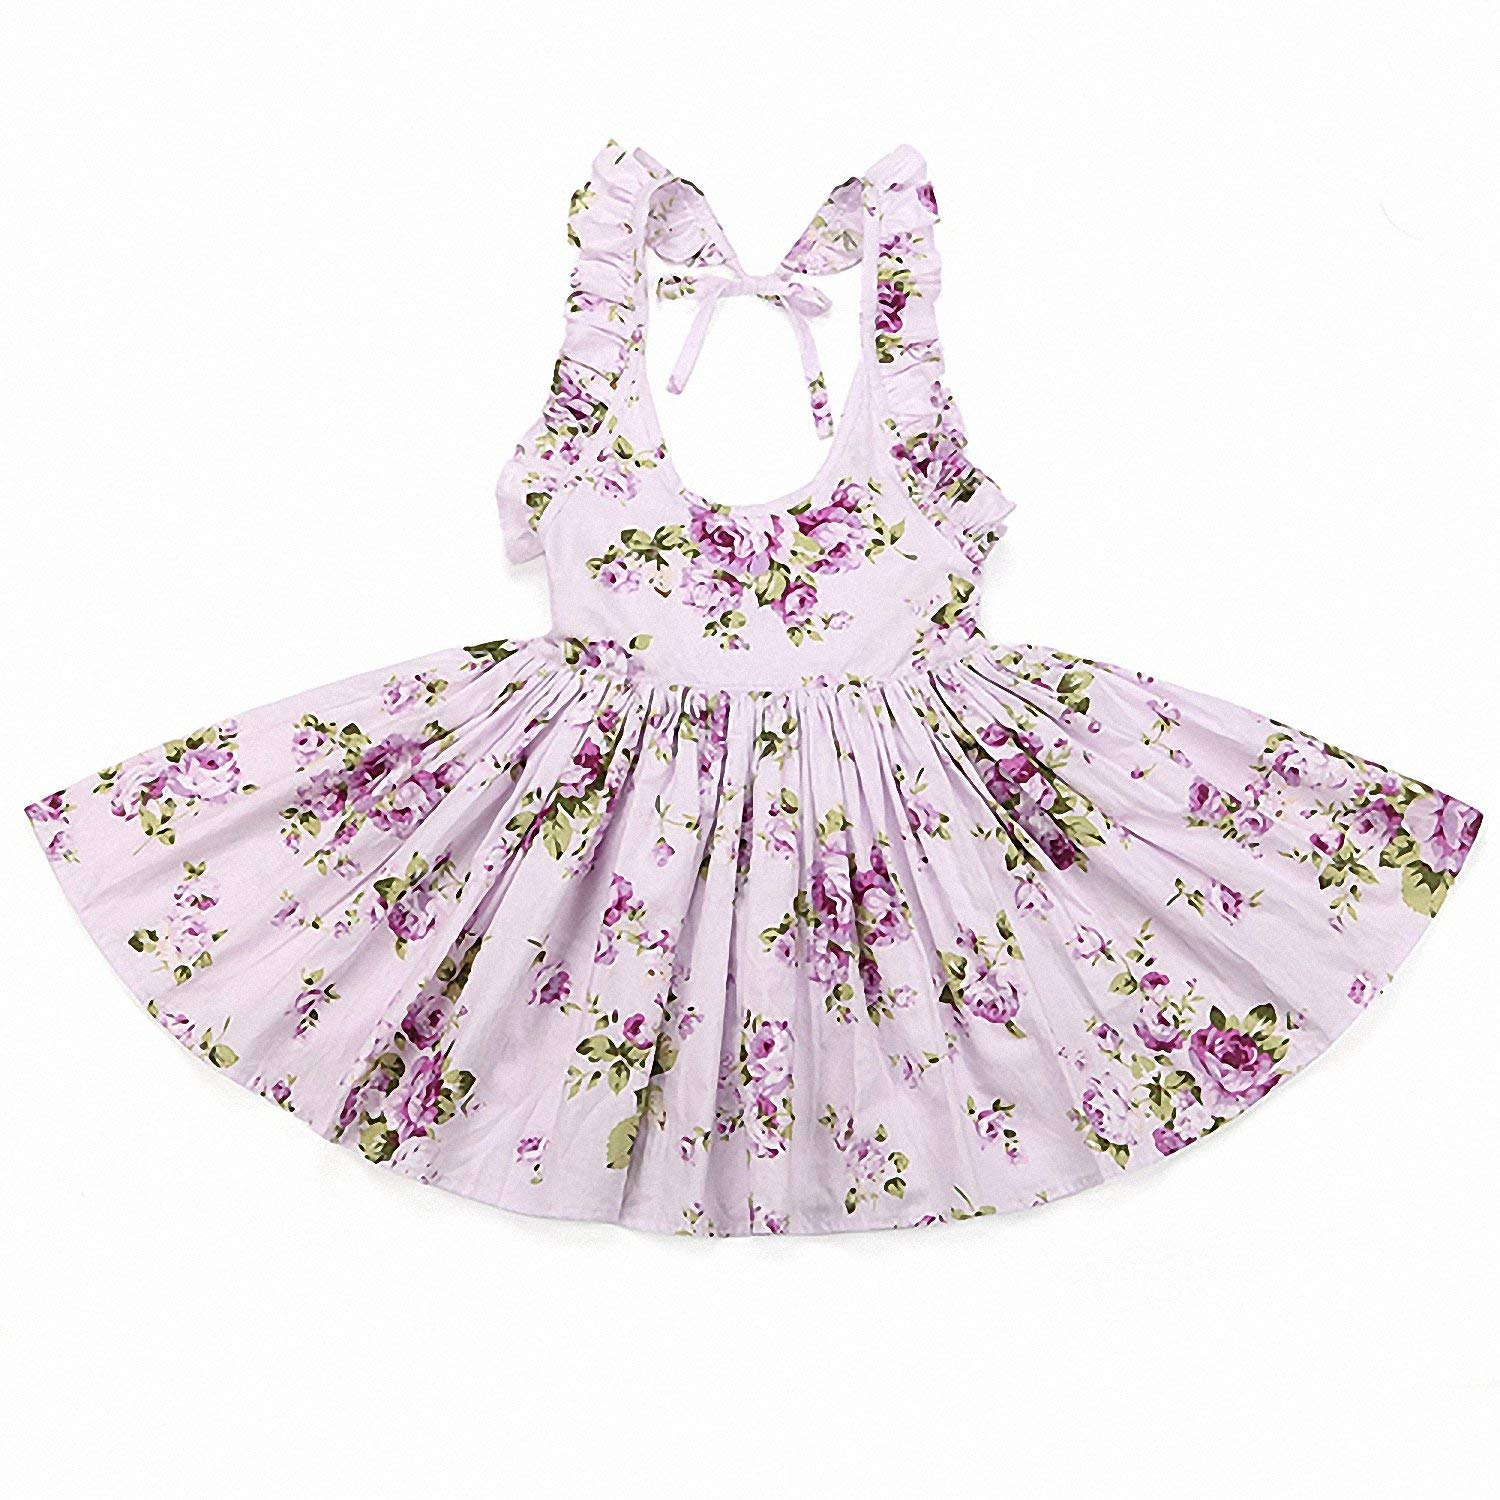 Drawingo Baby Girls Summer Style Floral Print Party Backless Dresses Clothing